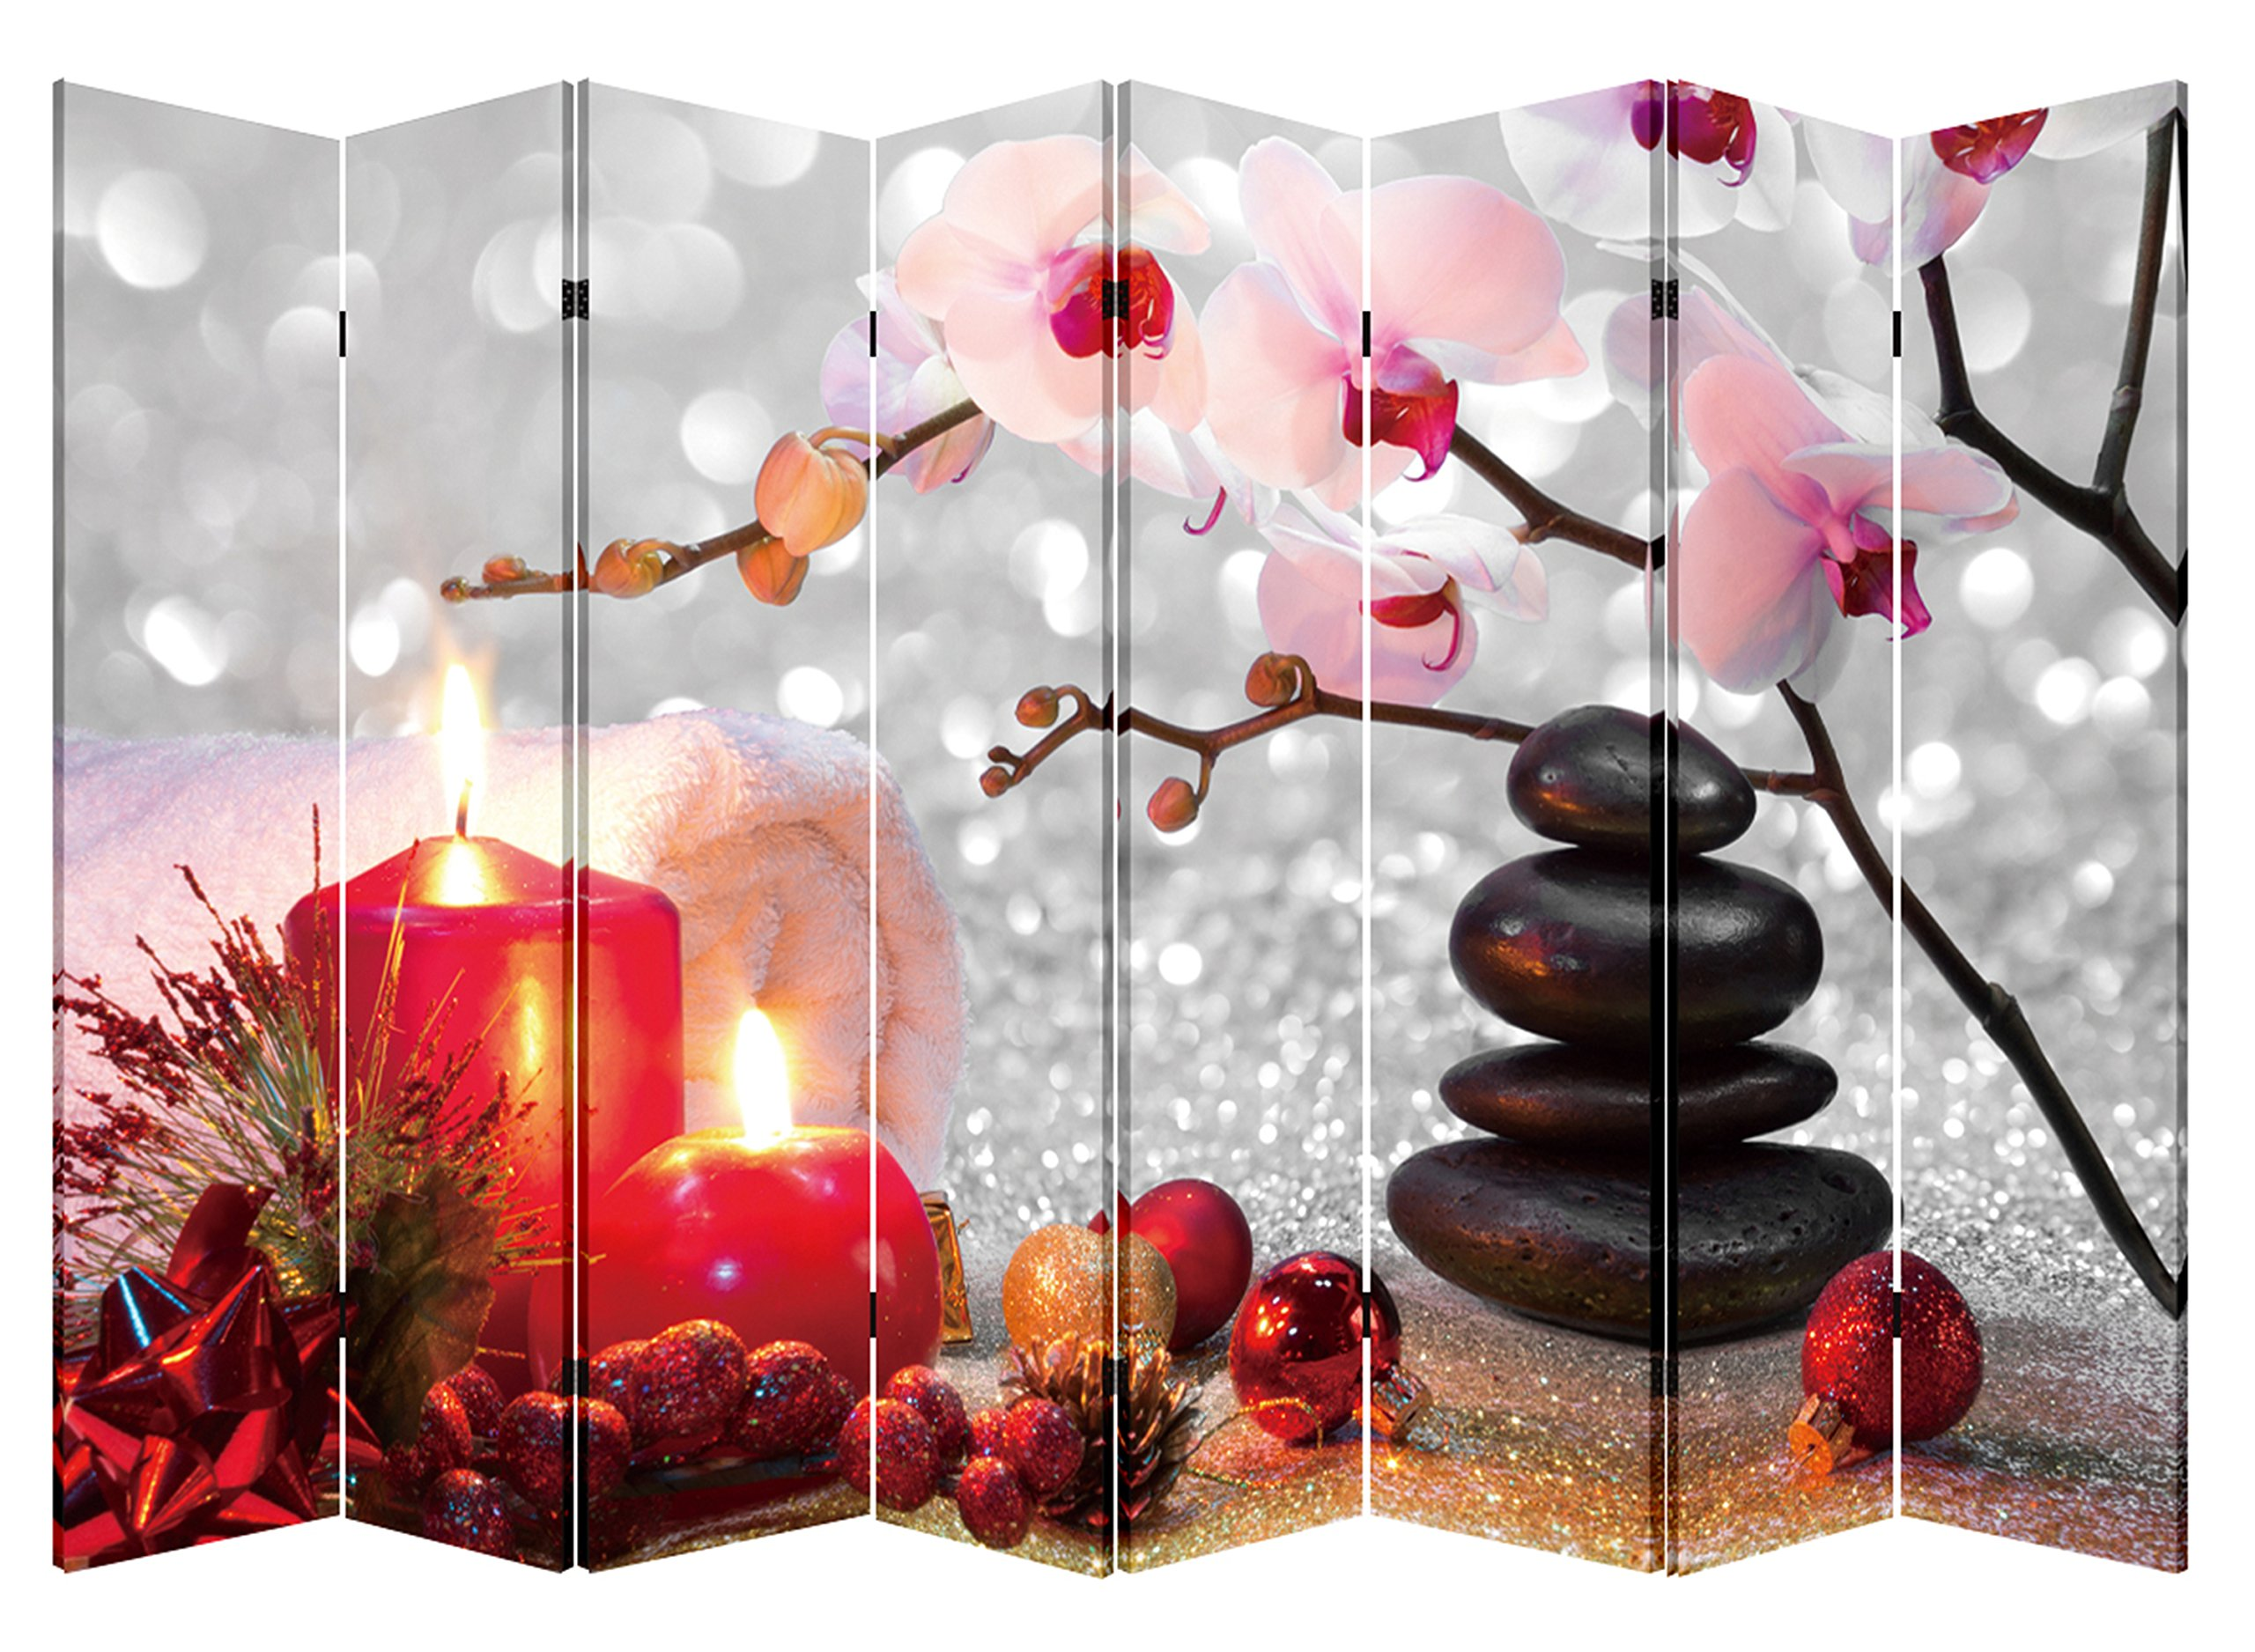 8 Panel Folding Screen Canvas Privacy Partition Divider- Winter Spa